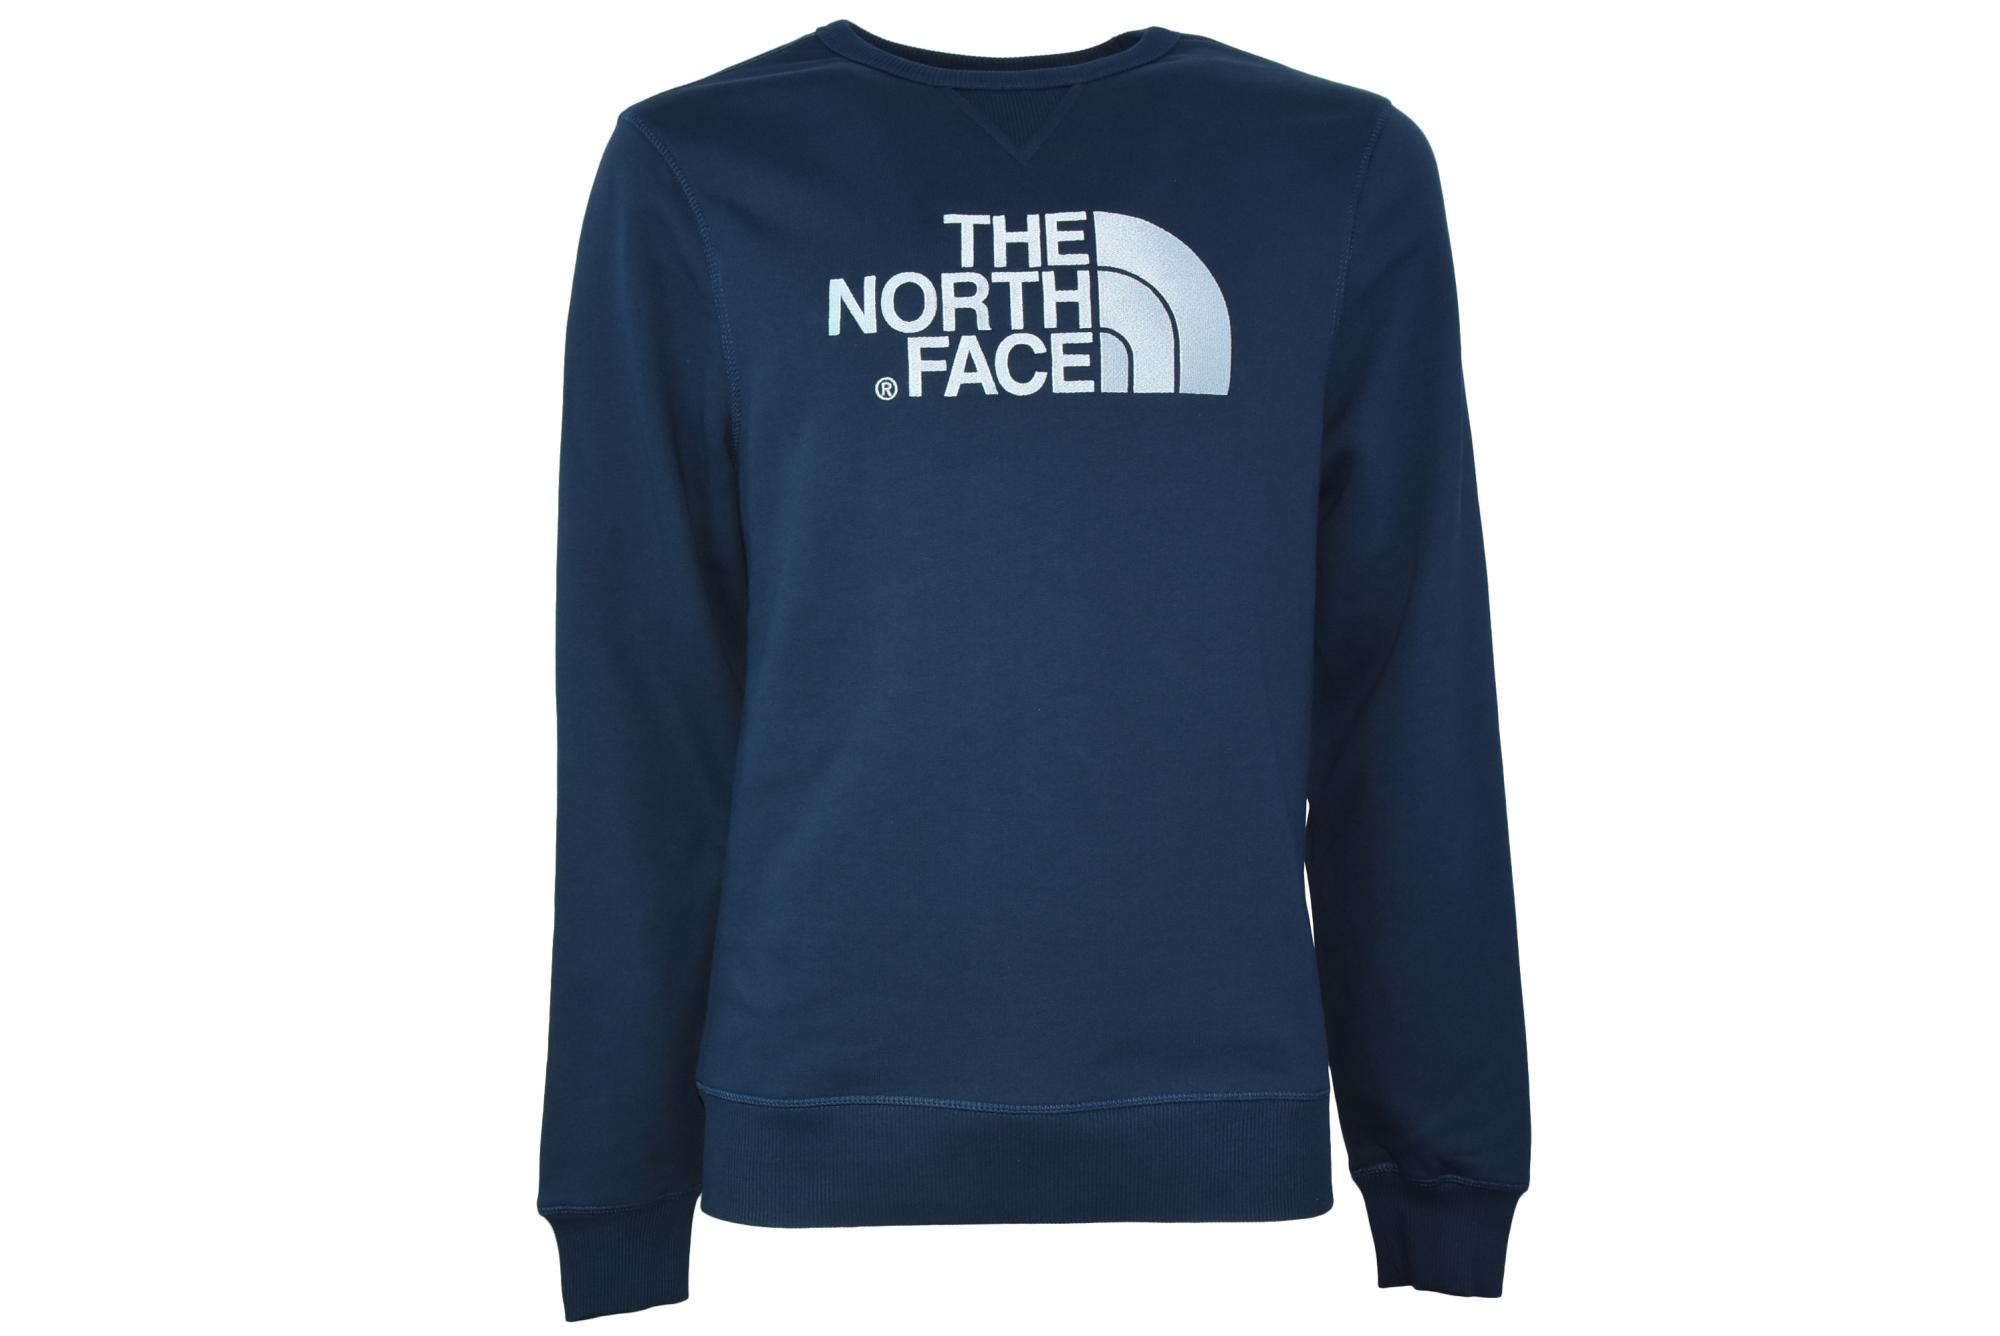 Details about The North Face A18u men s clothing crew neck sweatshirt  T92ZWRH2G M DREW PEAK CR 369e151d3065